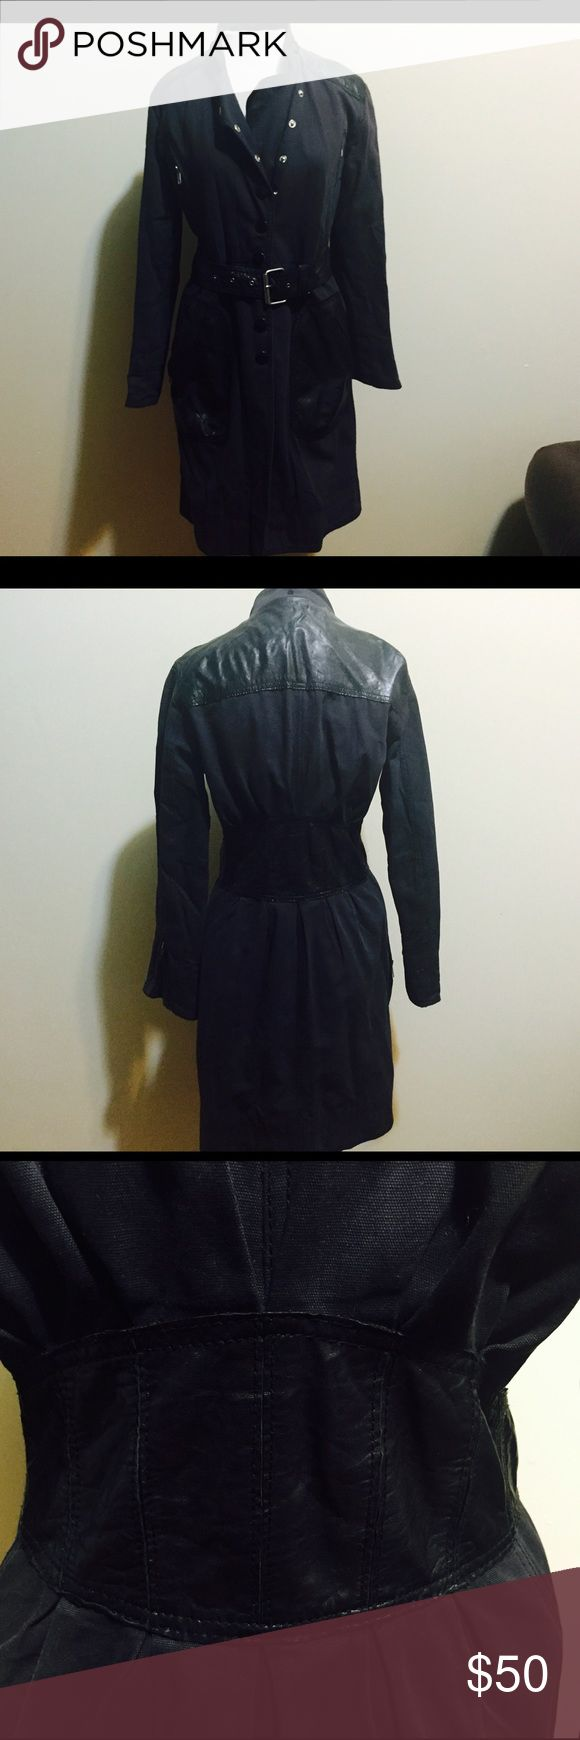 Catherine Maldandrino small leather detail jacket Catherine Maldandrino small leather detail jacket .. Lining is thorn inside look at picture outside is in excellent condition Catherine Malandrino Jackets & Coats Trench Coats